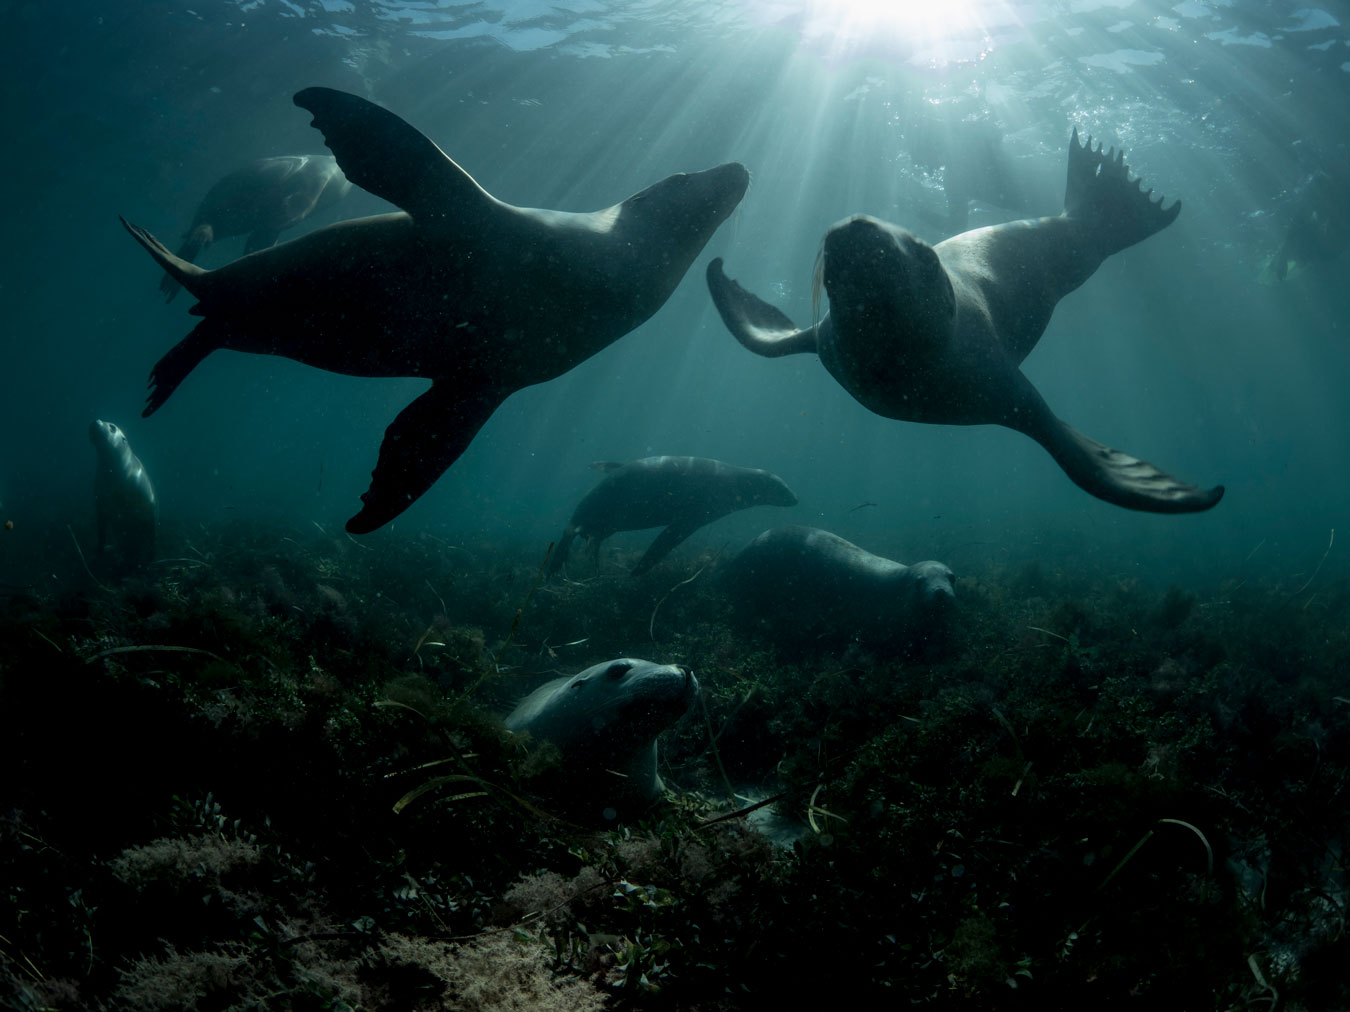 several-sea-lions-underwater-playing-near-sea-weed